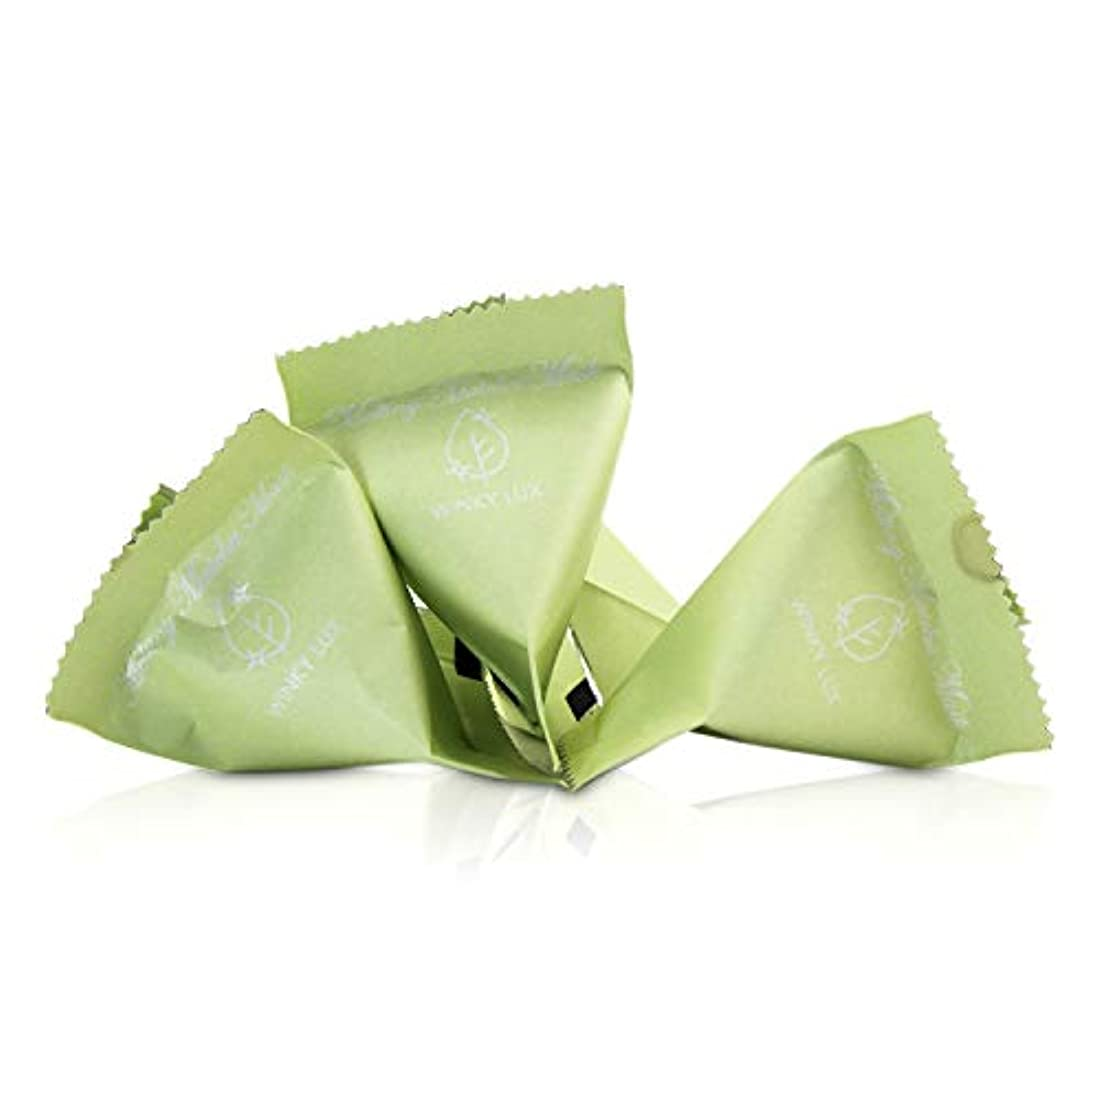 Winky Lux Melting Matcha Mask 4x4g/0.14oz並行輸入品